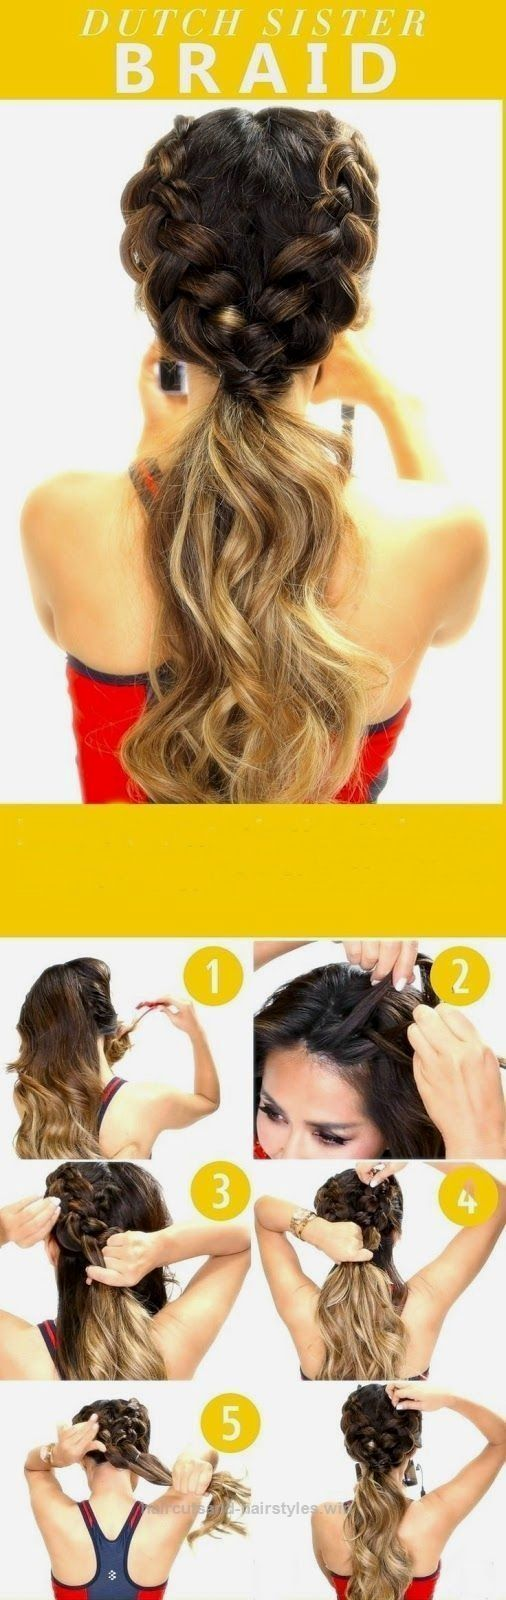 Awesome cool supereasy trendy hairstyles for school quick easy